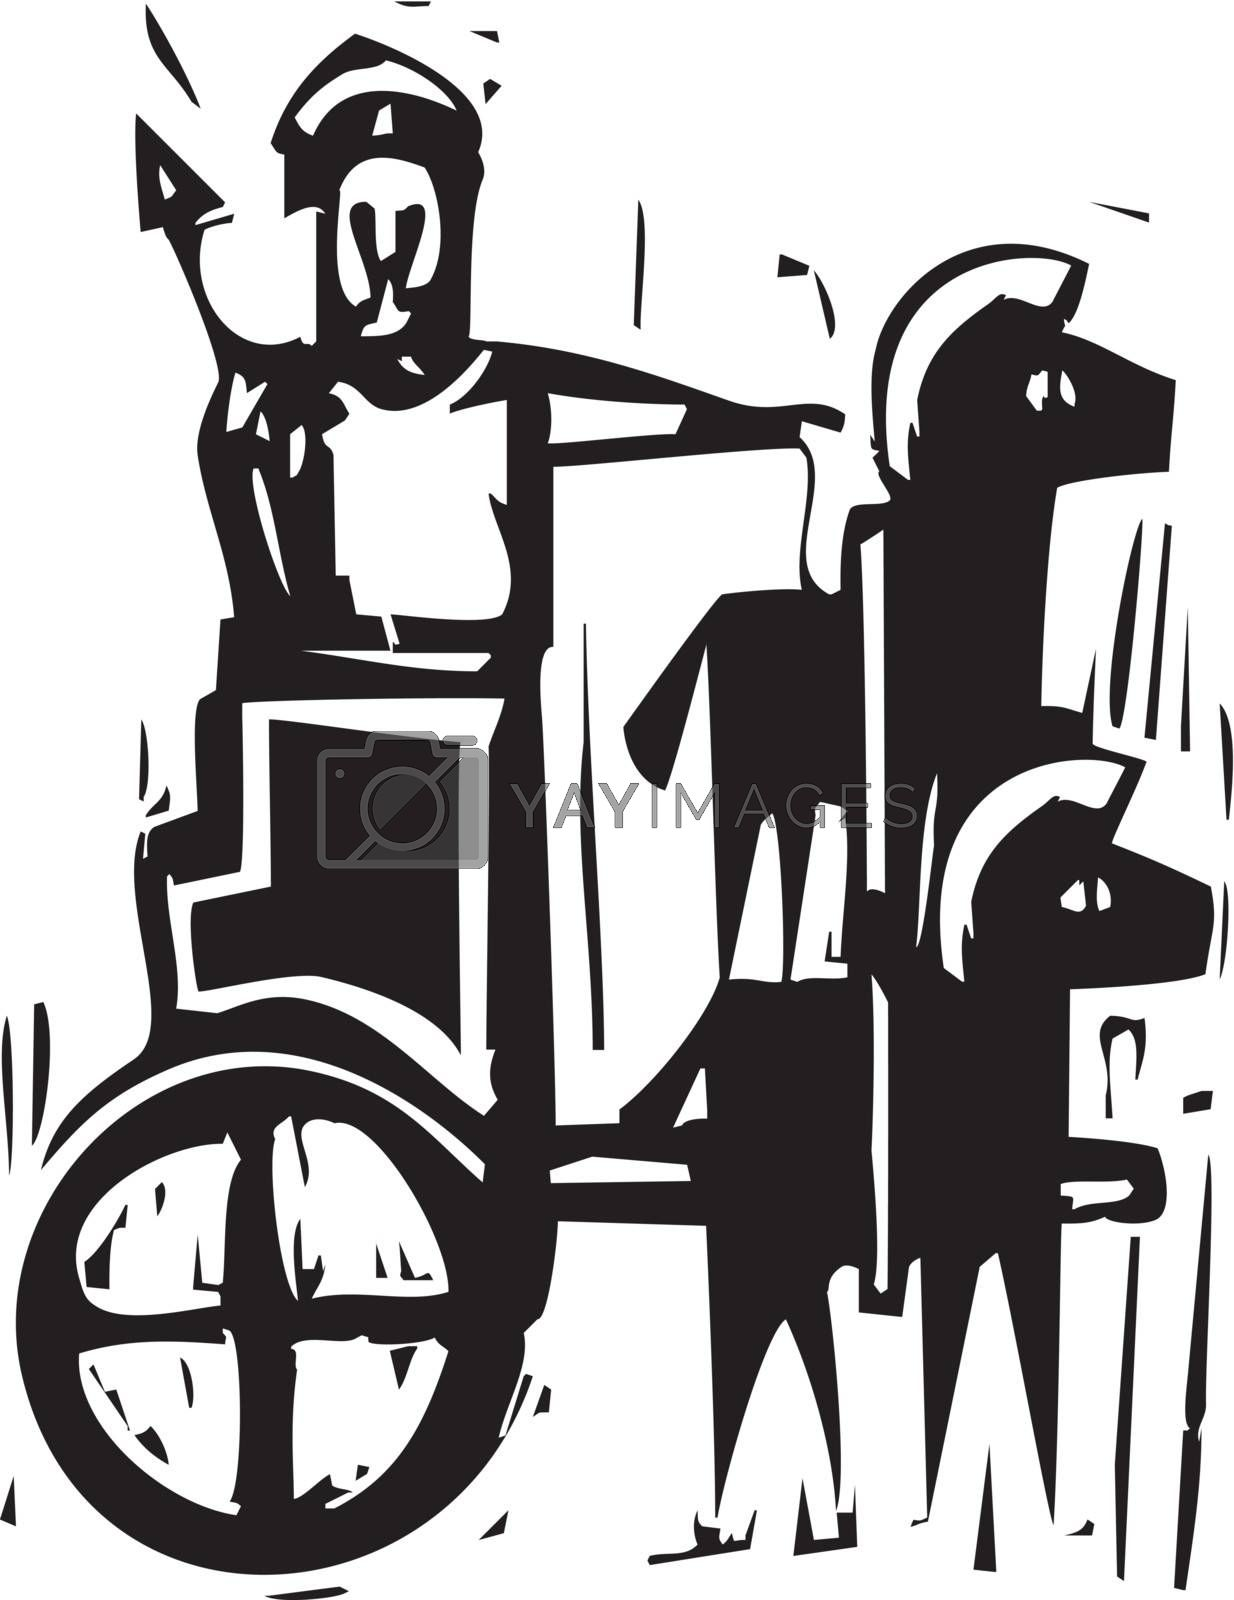 Woodcut expressionist style image a Greek warrior in a chariot drawn by two horses